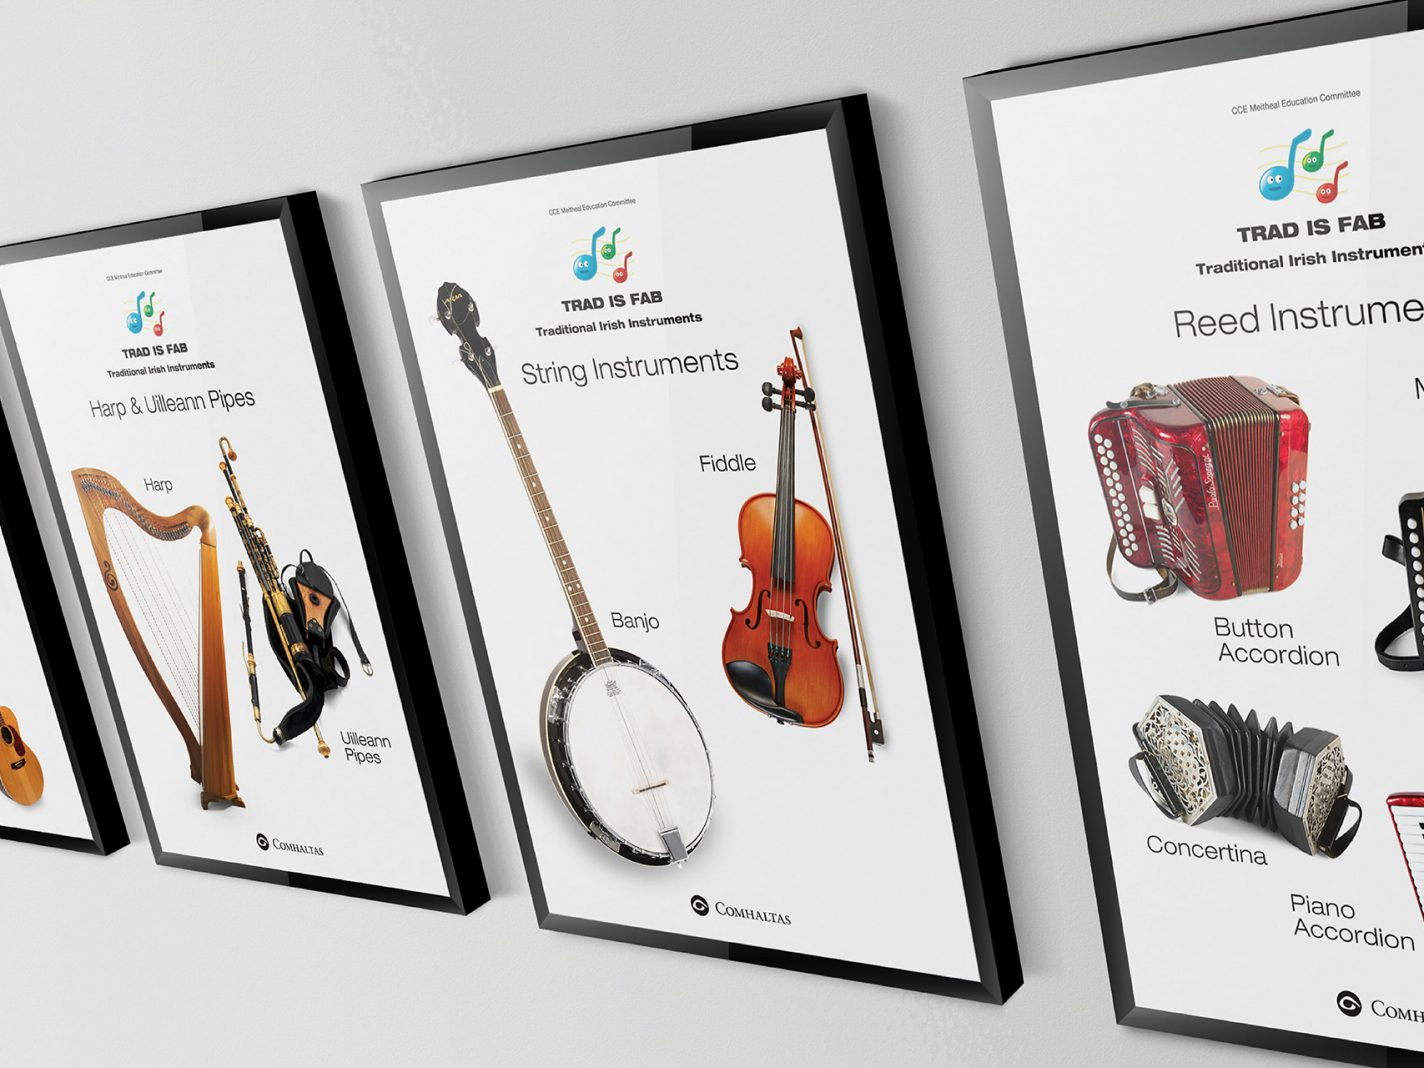 Comhaltas Trad is Fab Posters